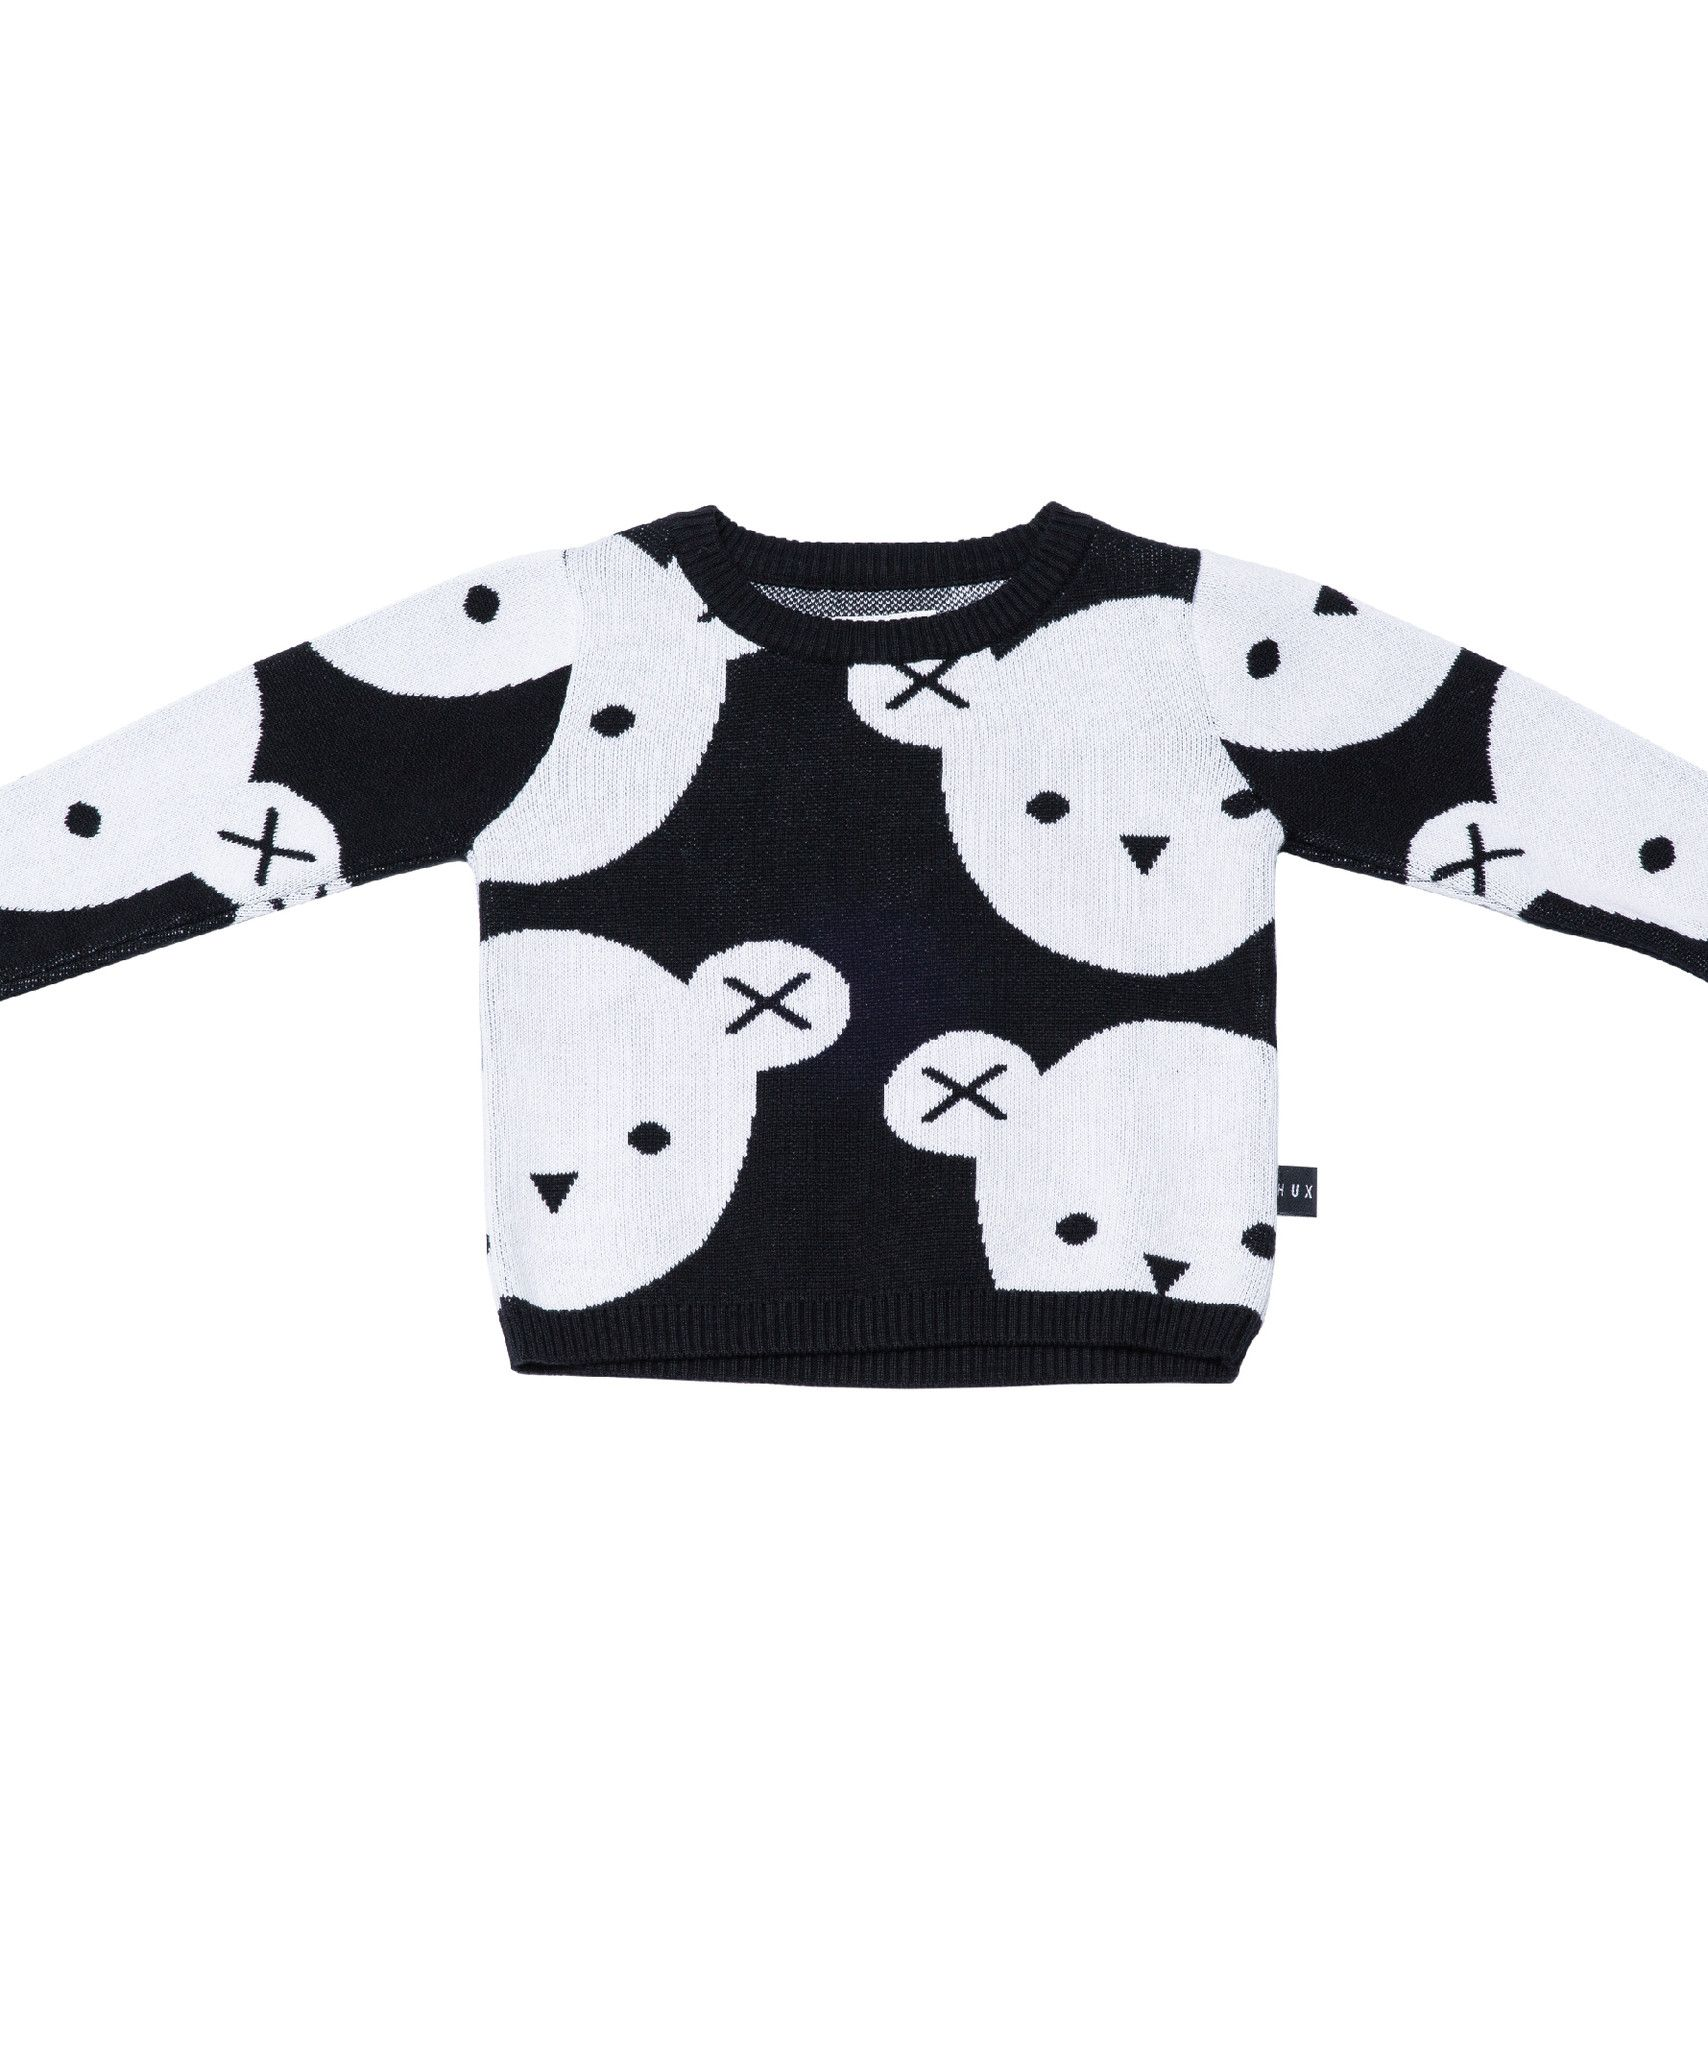 Huxbaby Big Falling Bears Knitted Jumper With Images Huxbaby